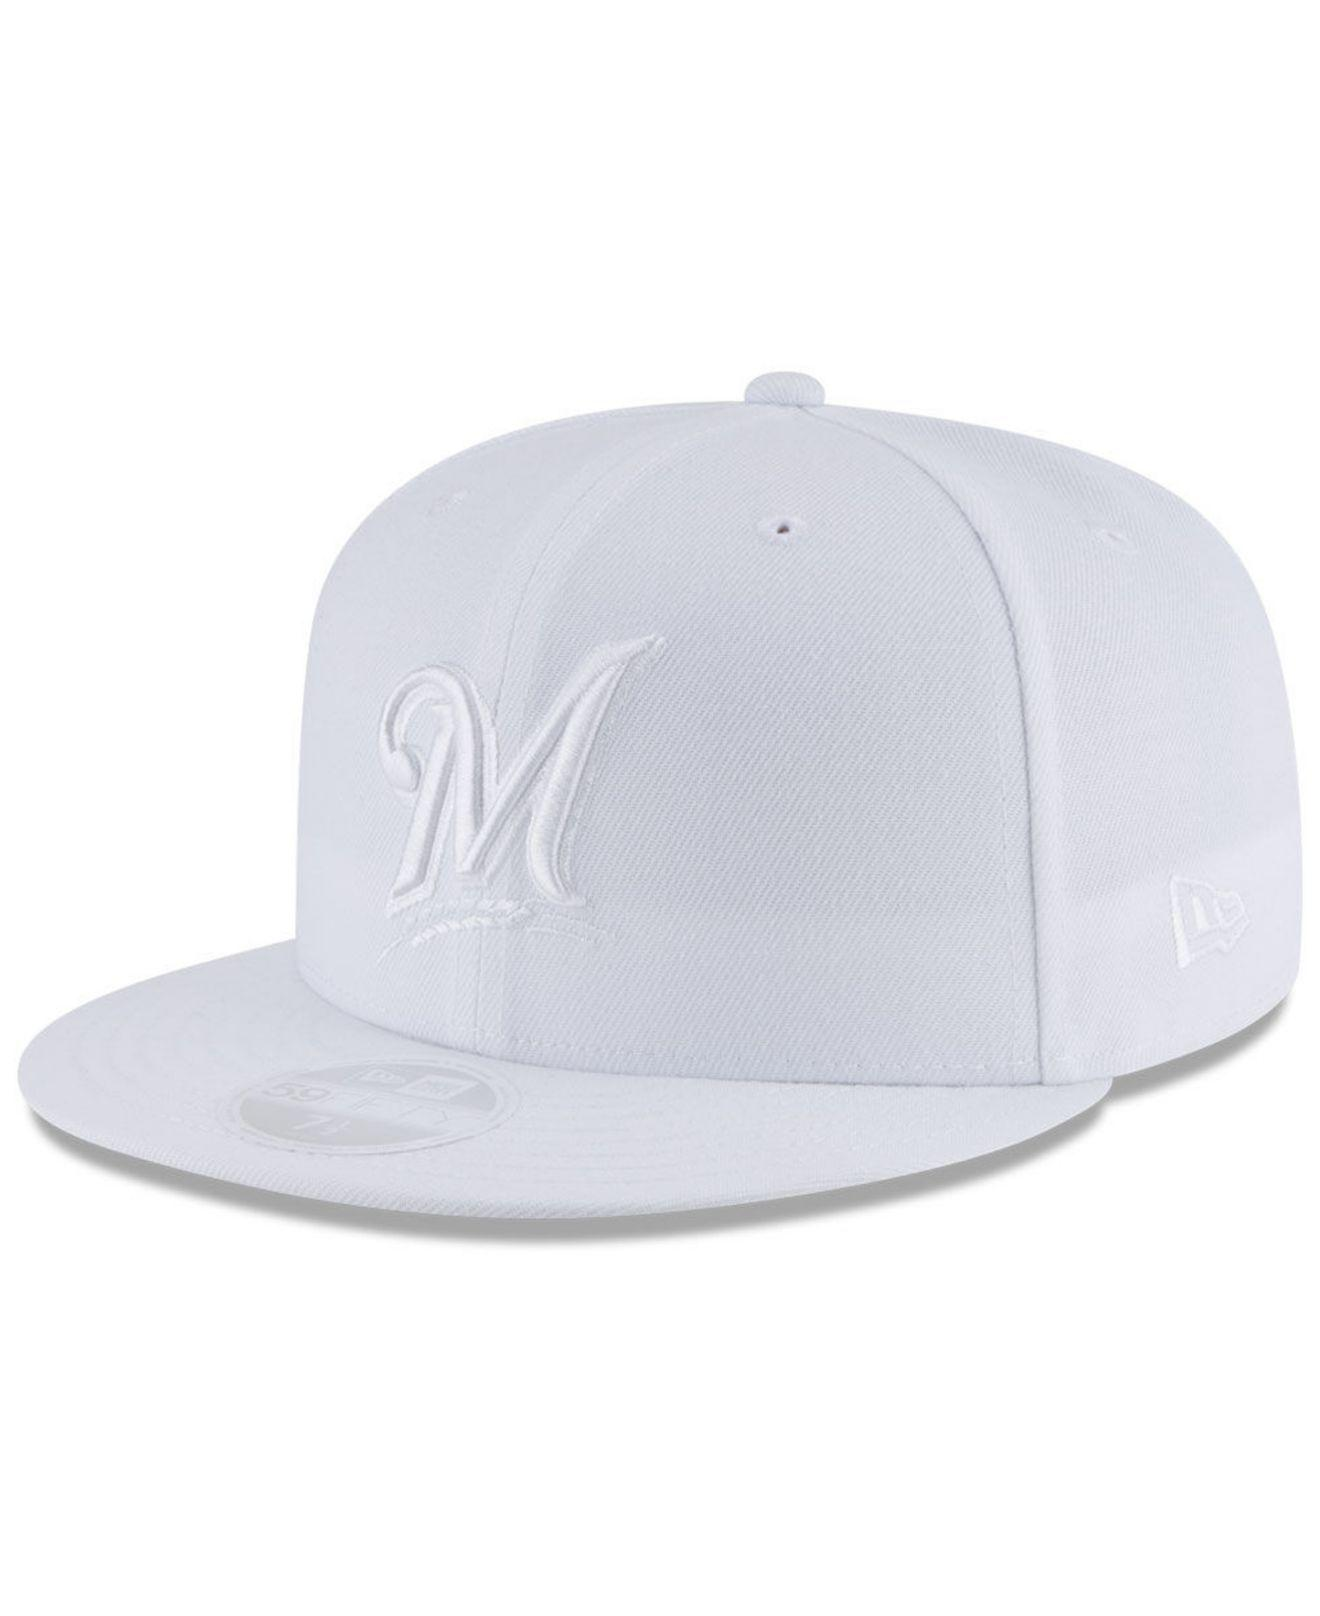 5a74834dc81 KTZ - Milwaukee Brewers White Out 59fifty Fitted Cap for Men - Lyst. View  fullscreen